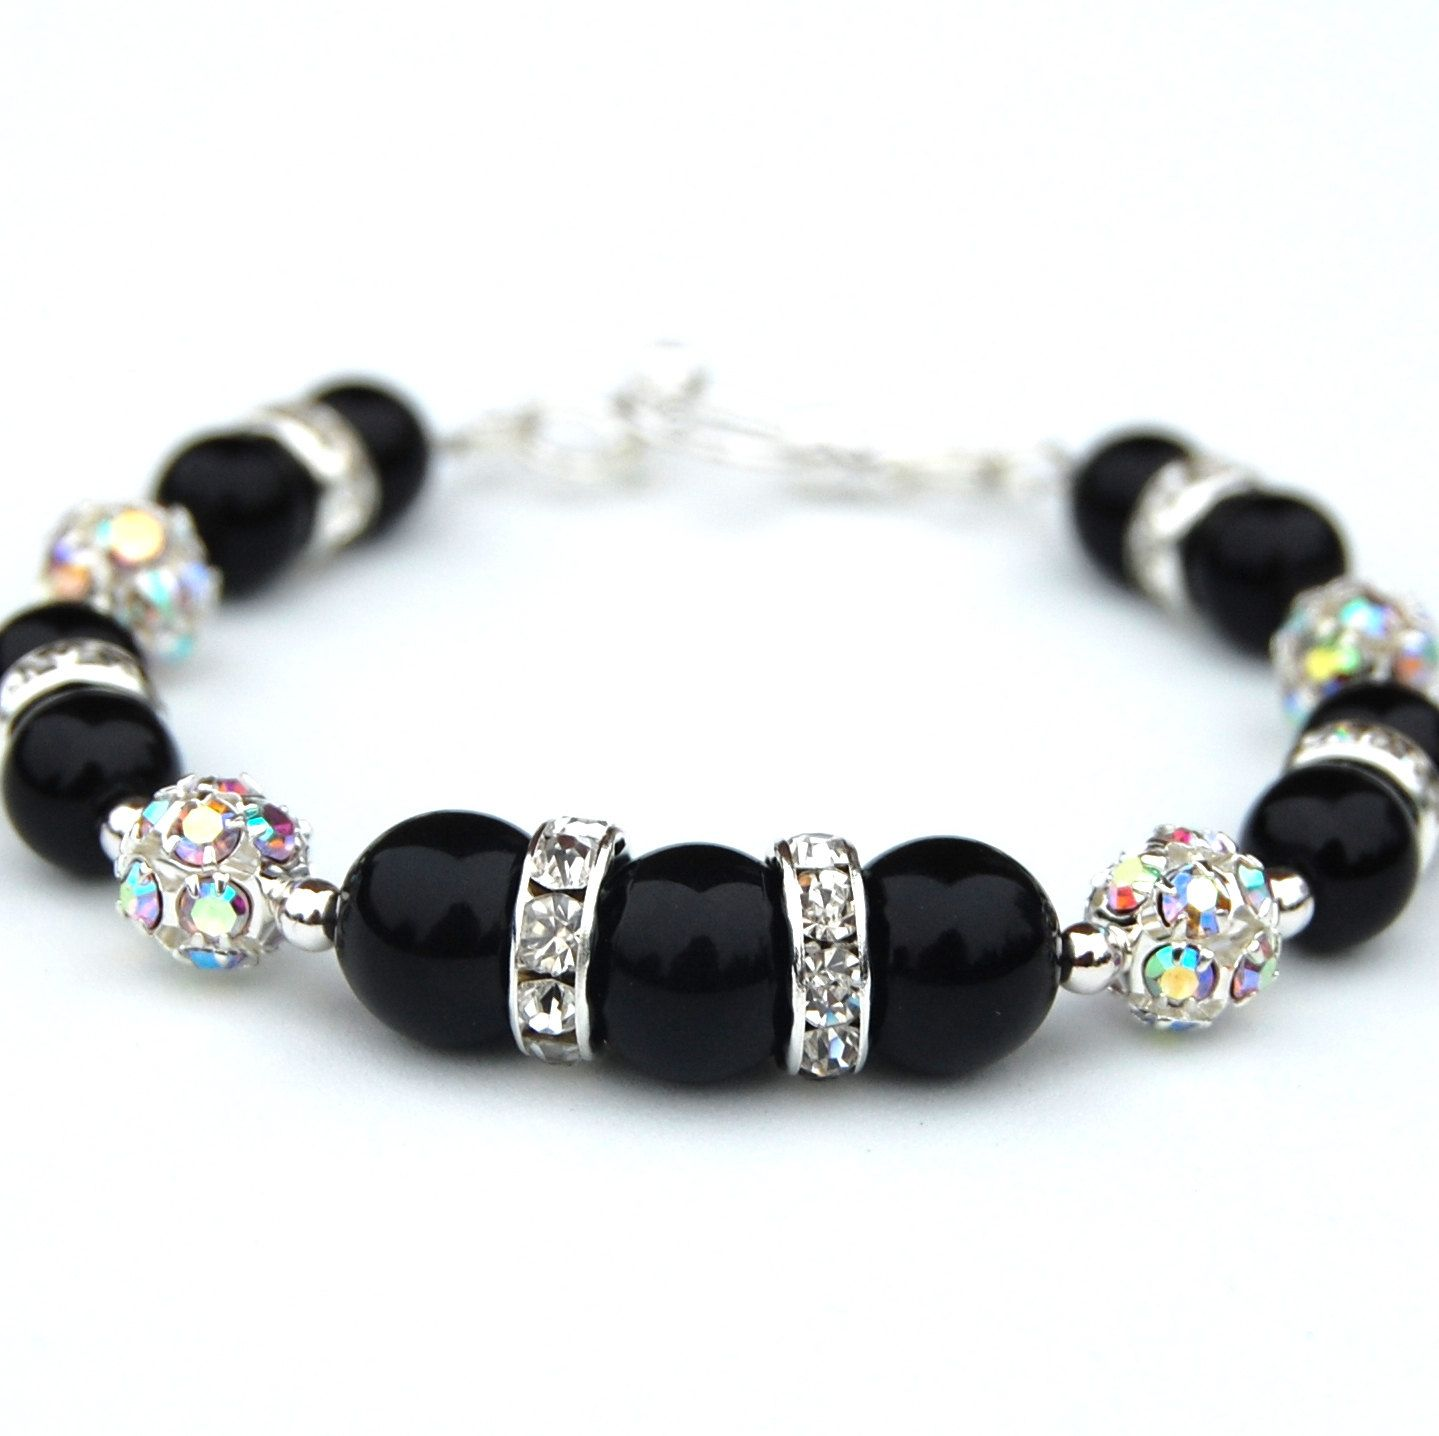 cz bridal pearl p black freshwater jewelry usabride a photo htm jb email strand bracelet shop larger friend